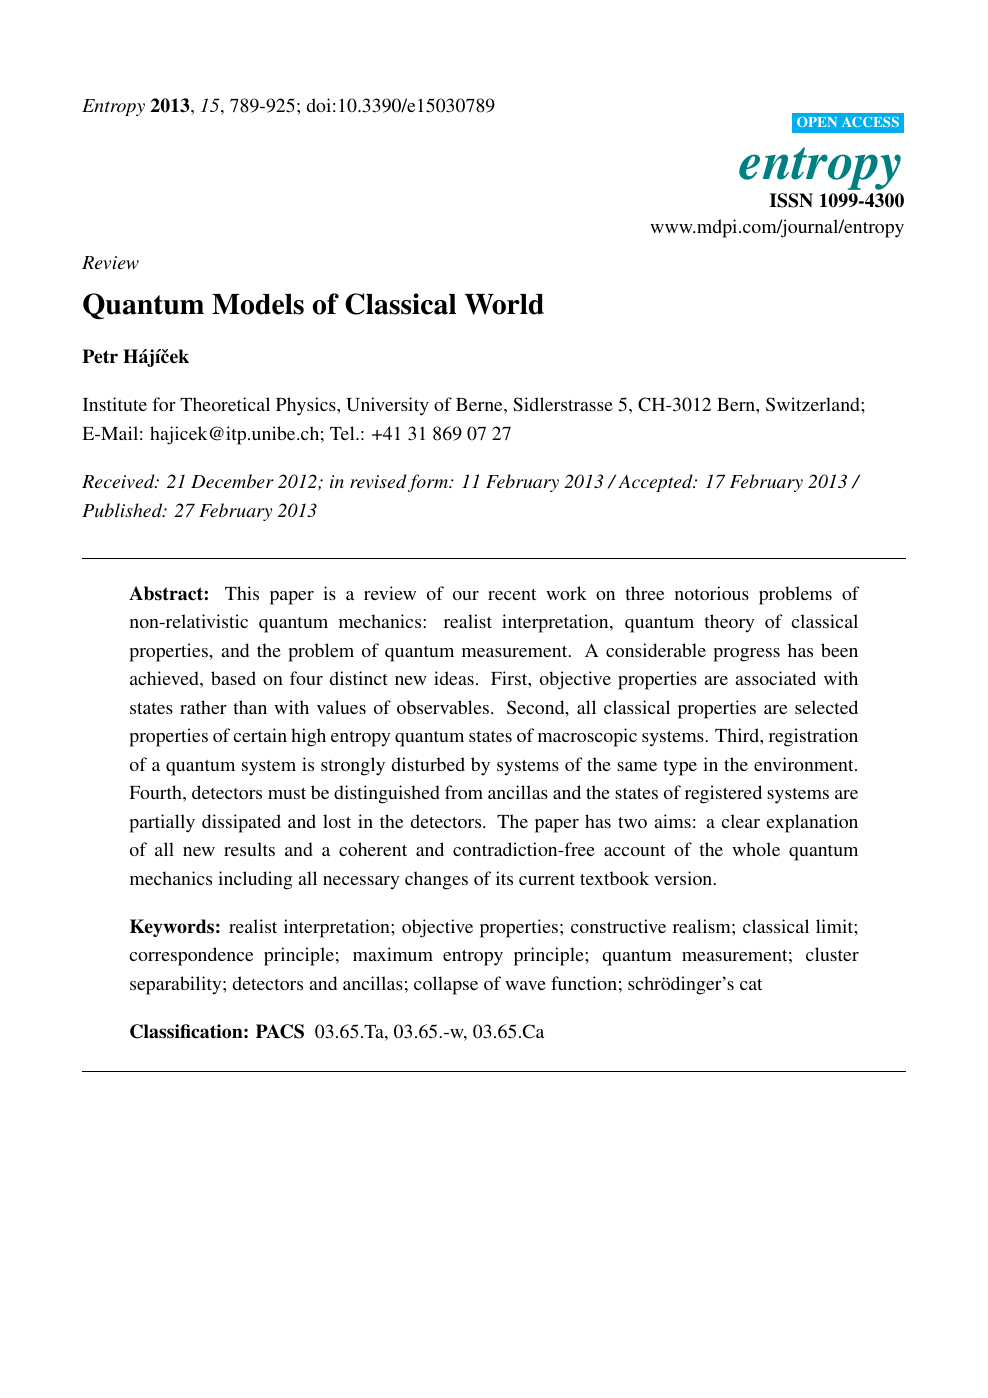 Quantum Models of Classical World – topic of research paper